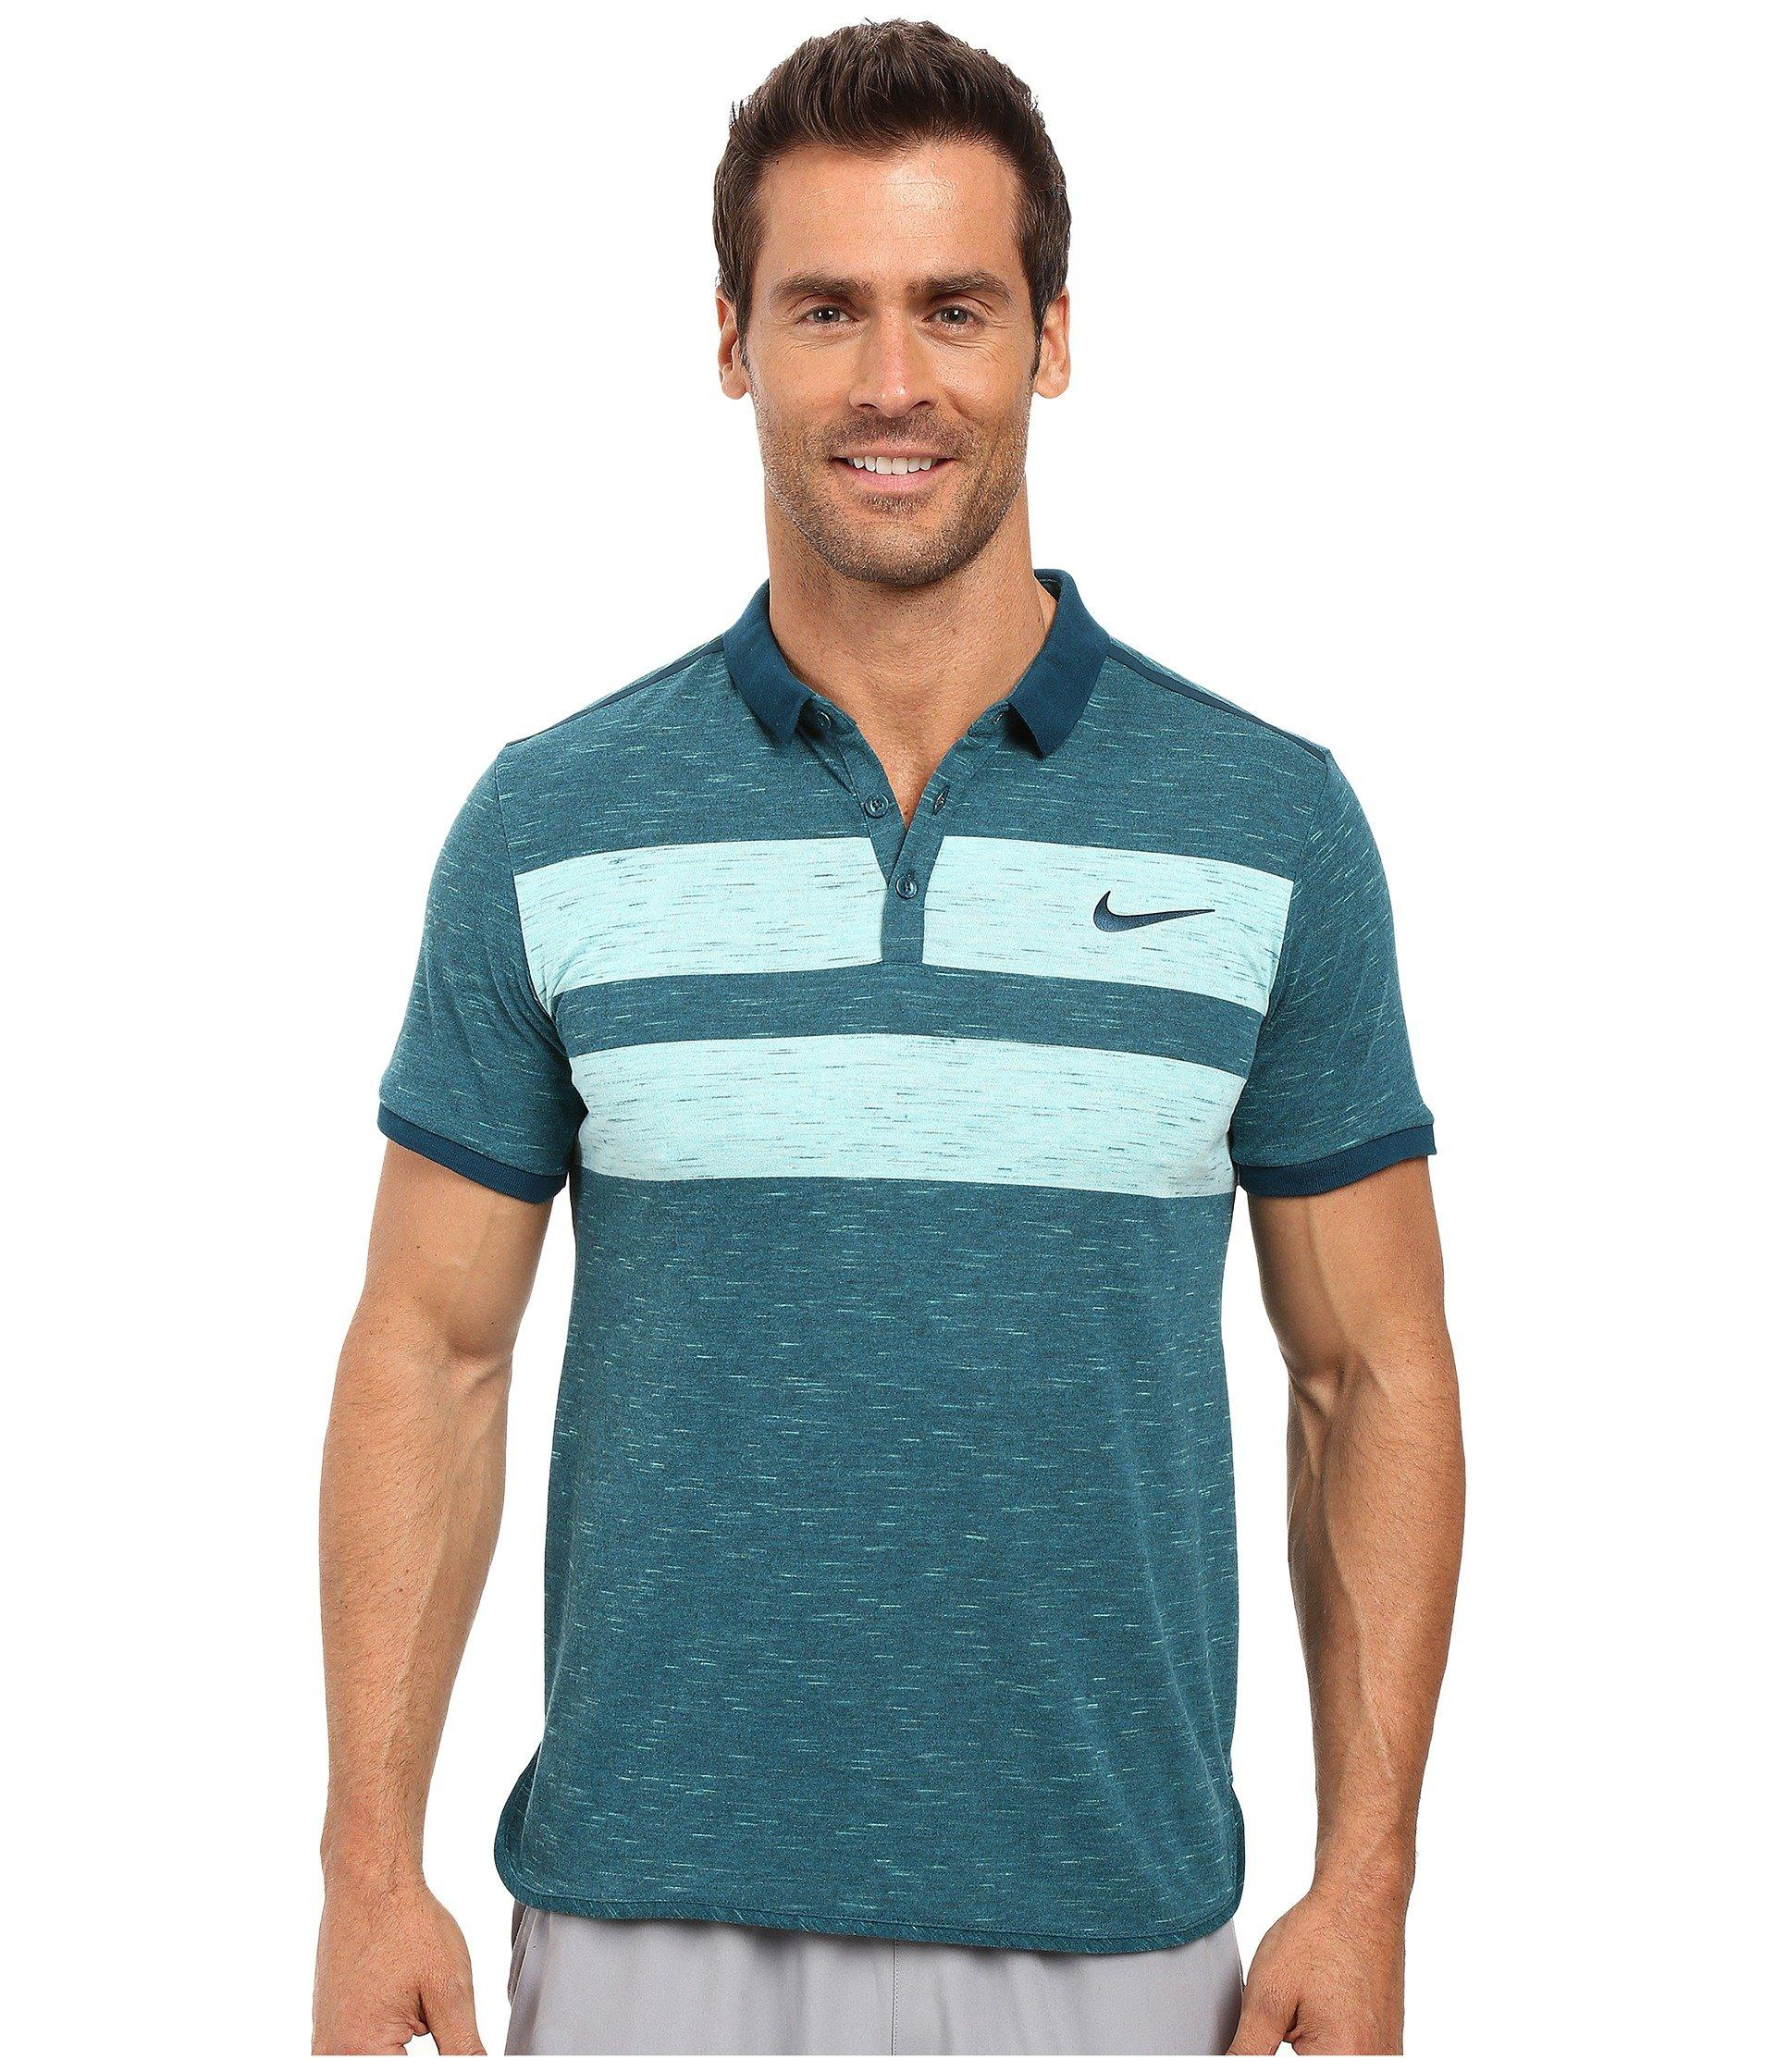 0b8d2aba Nike Court Dry Advantage Tennis Polo In Midnight Turquoise/Midnight  Turquoise